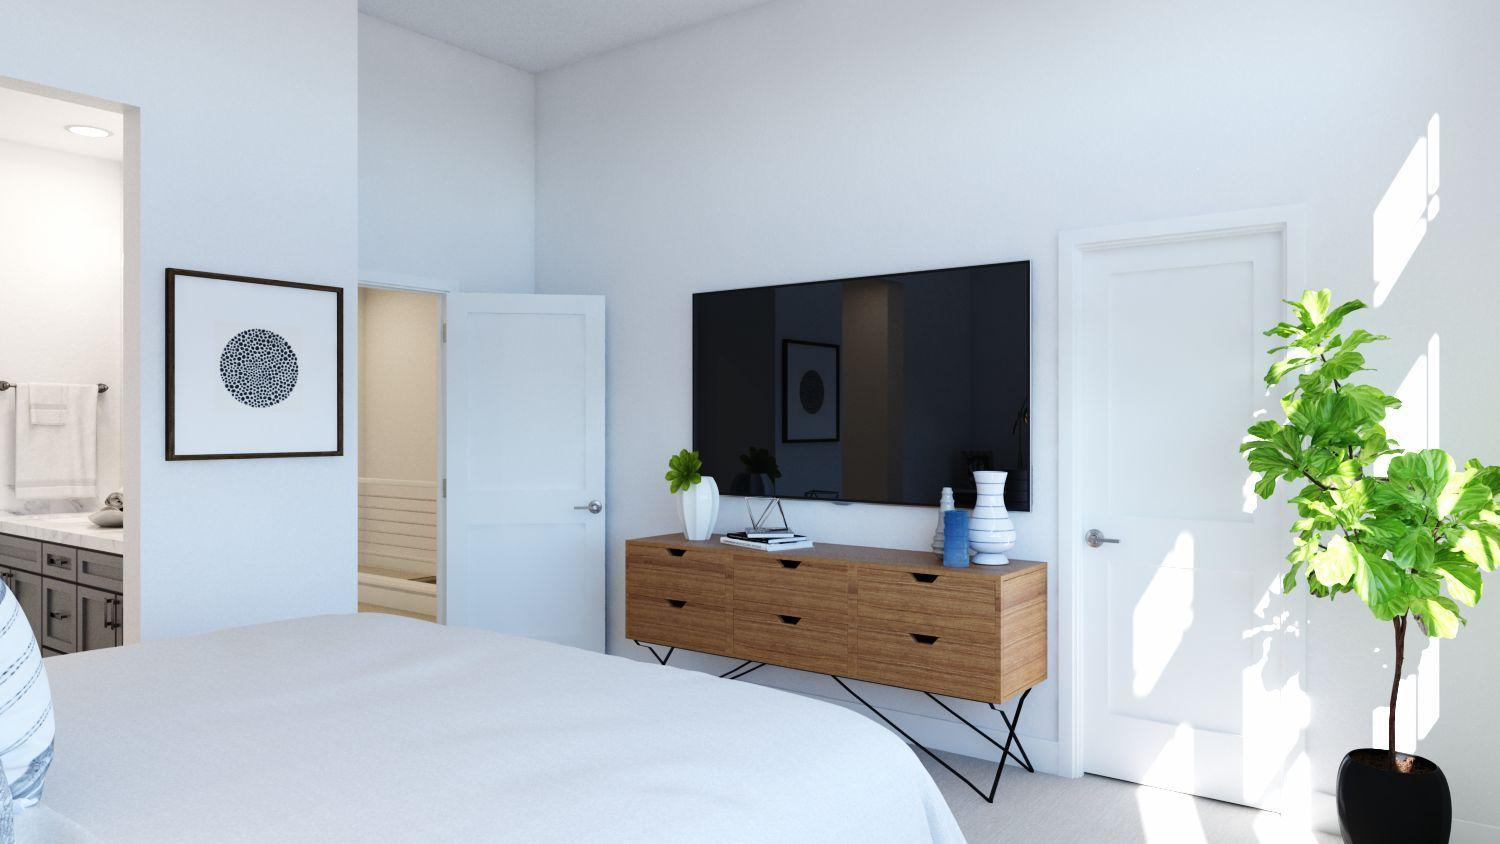 Bedroom featured in the Newport Residence 2 By Trumark Homes in Oakland-Alameda, CA